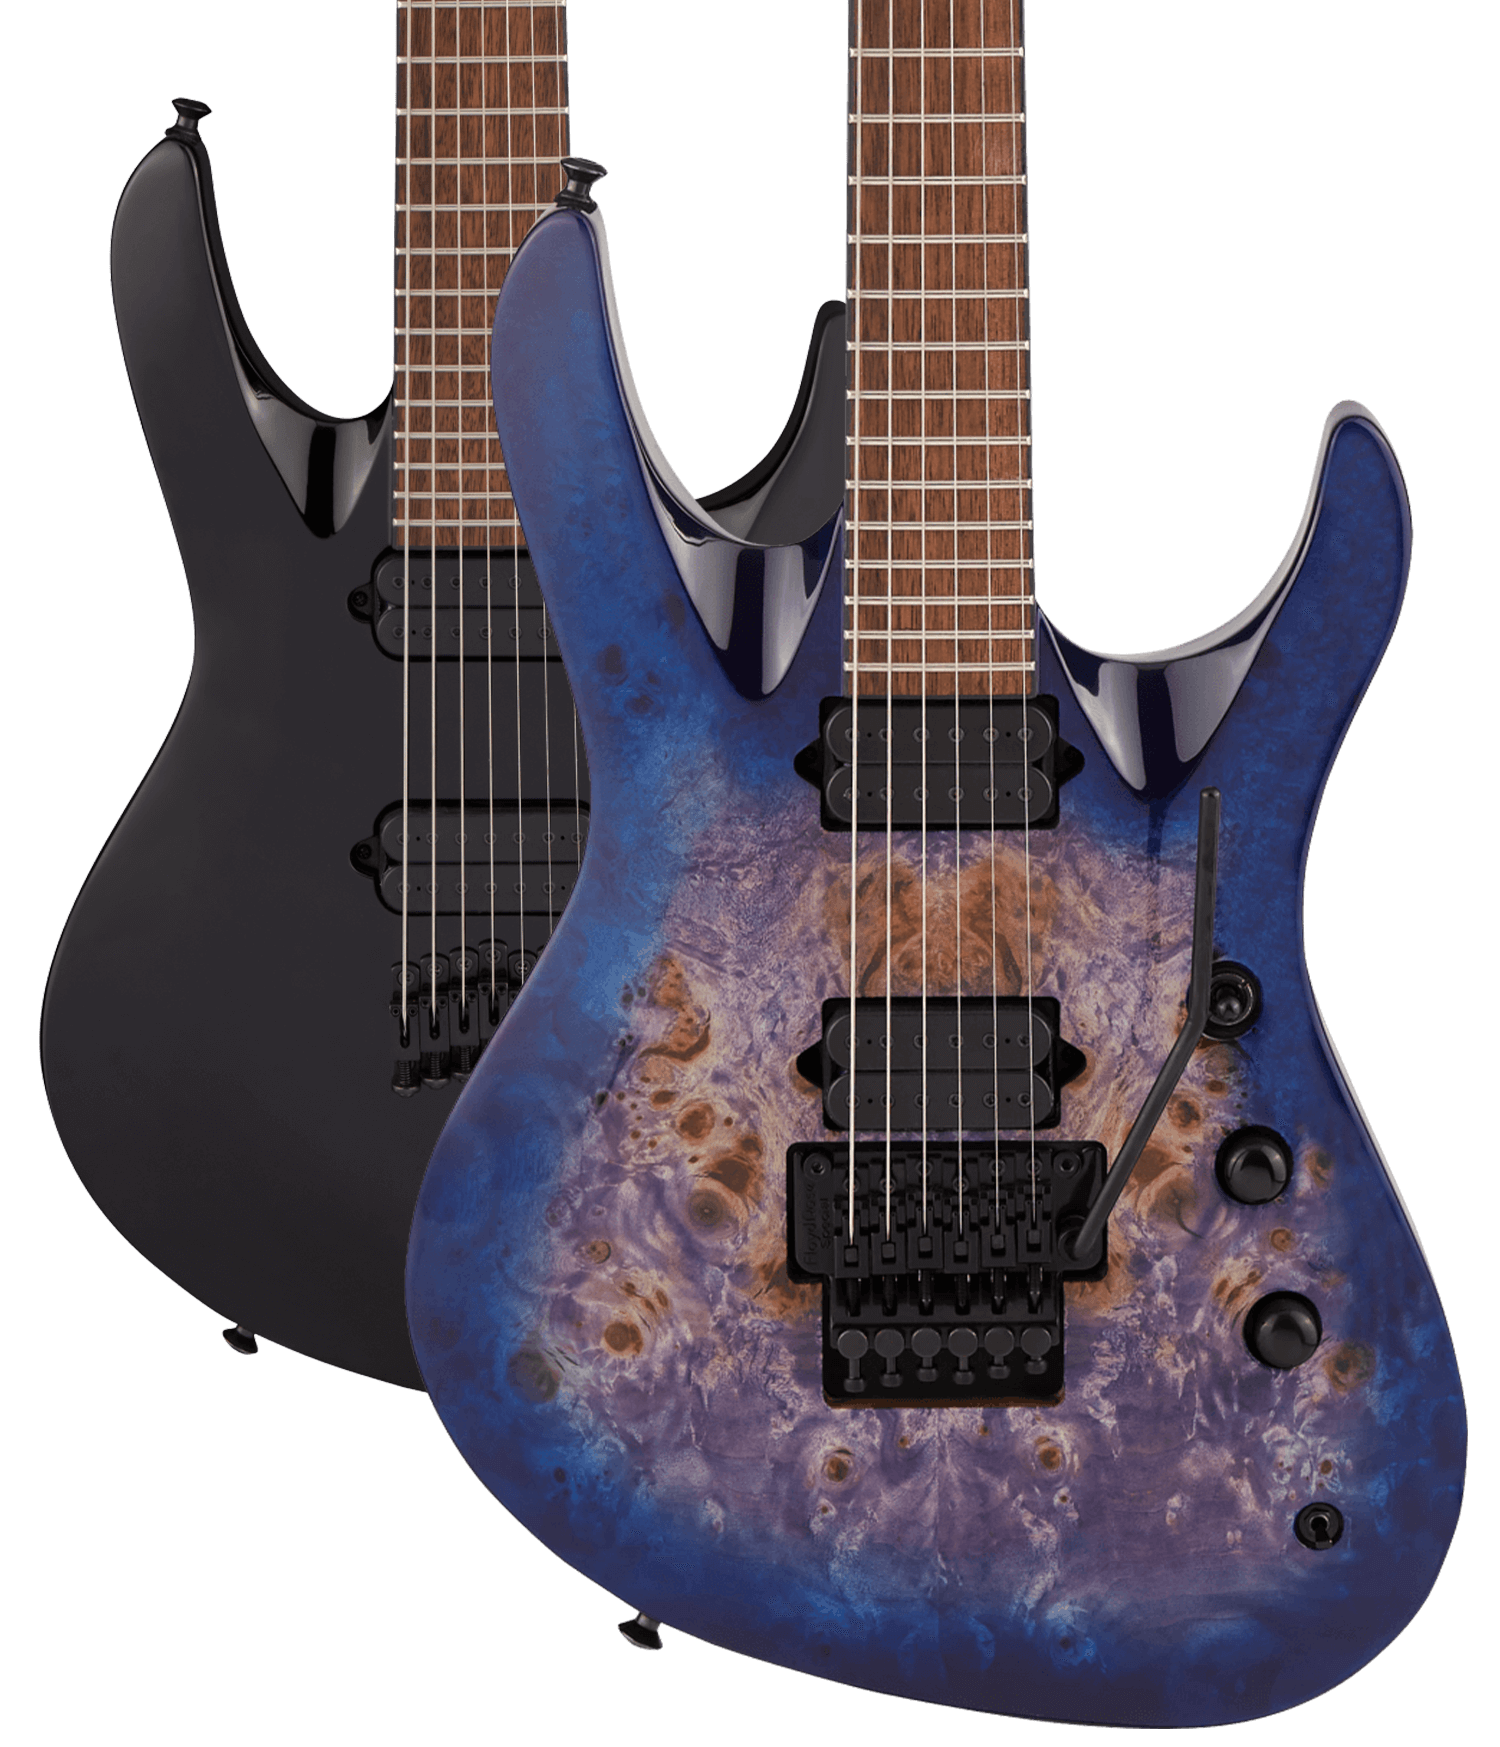 CHRIS BRODERICK PRO SERIES SIGNATURE SOLOIST 6- AND 7-STRING MODELS